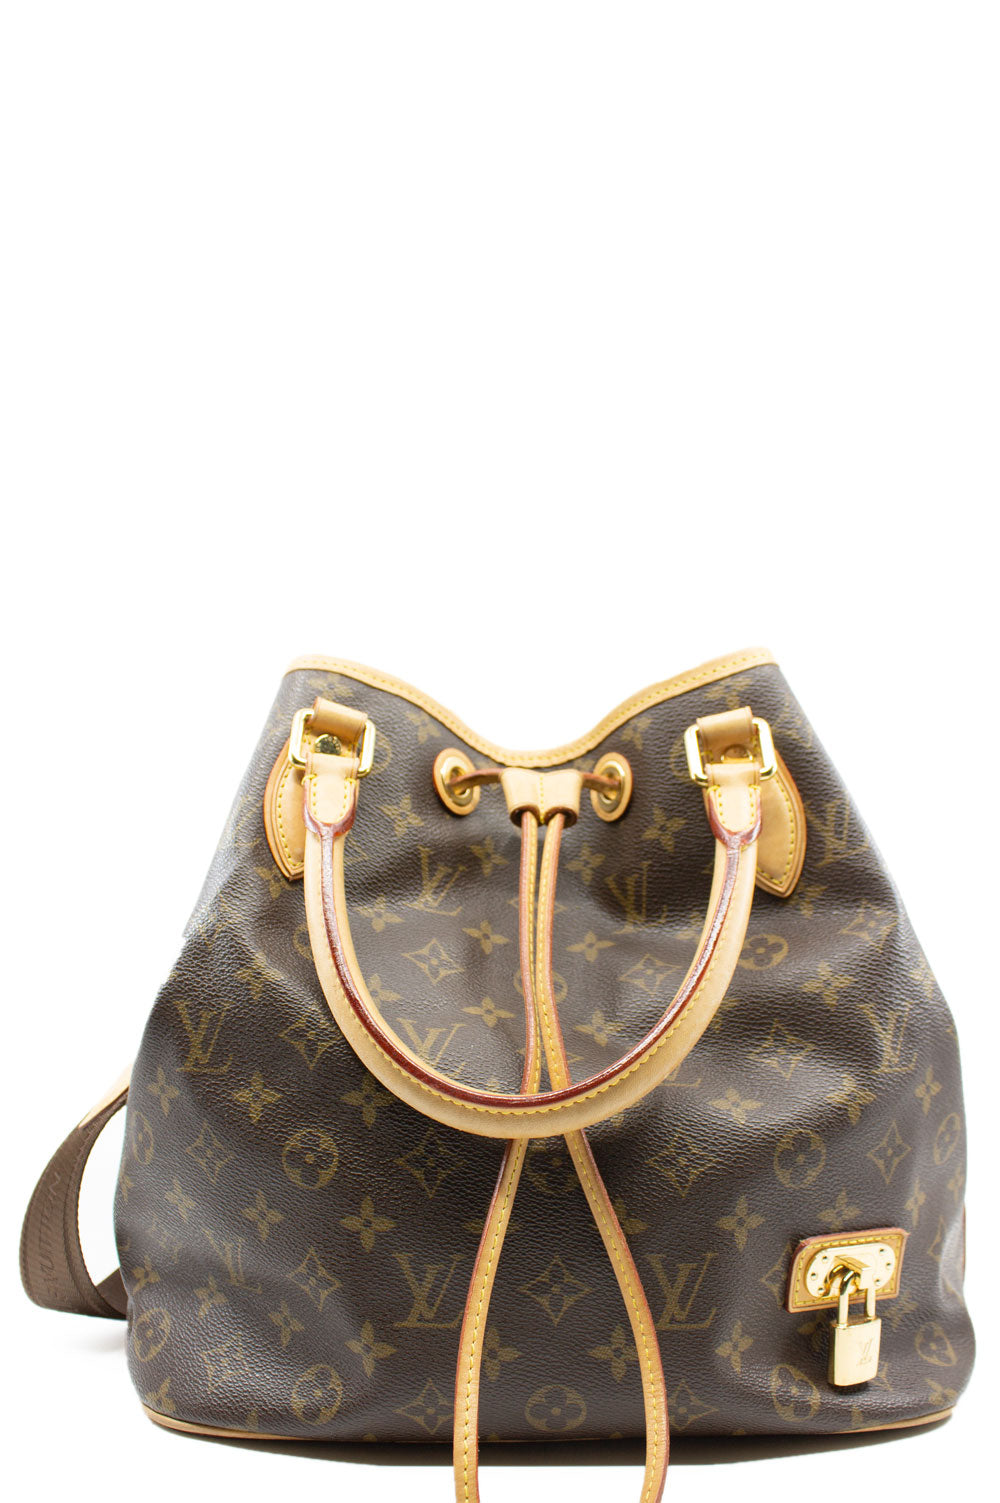 LOUIS VUITTON Eden Neo Bag Monogram Limited Edition Frontalansicht